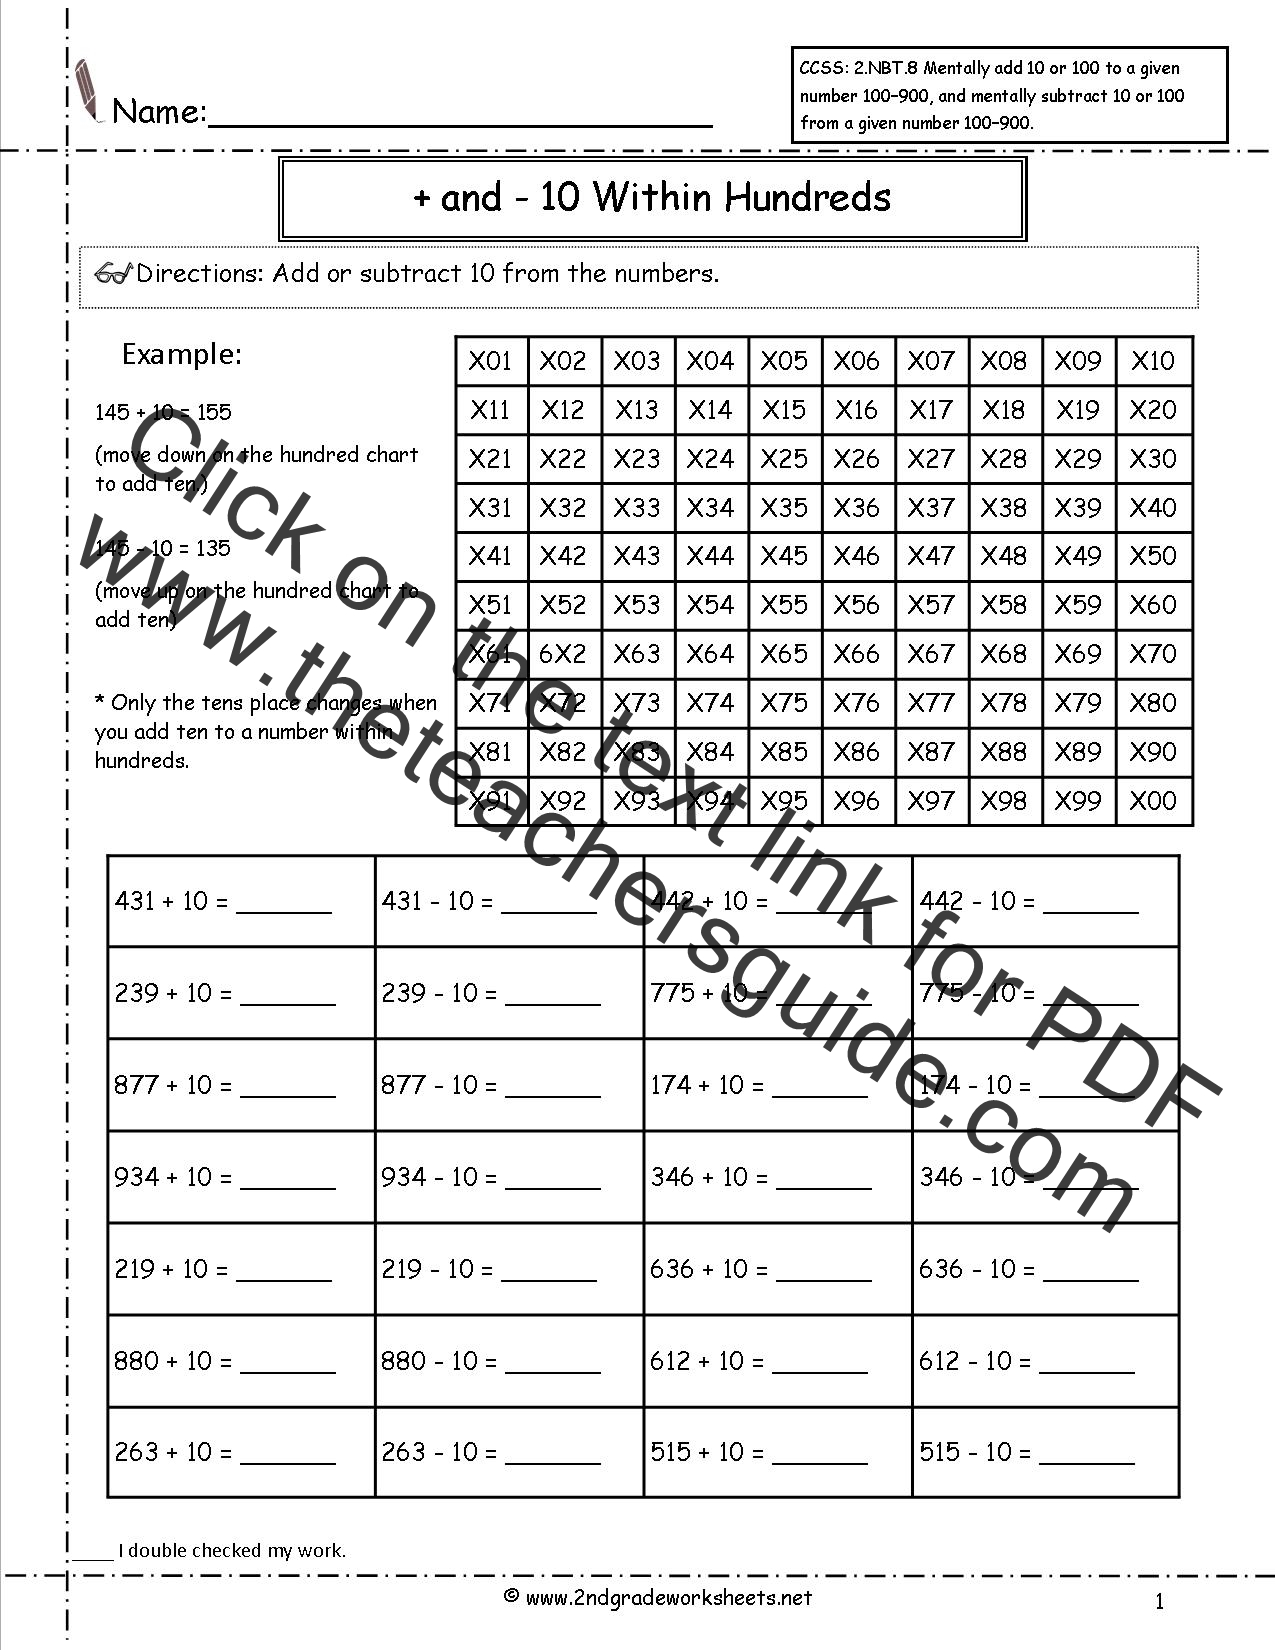 2nd Grade Math Common Core State Standards Worksheets – Adding and Subtracting Tens Worksheets